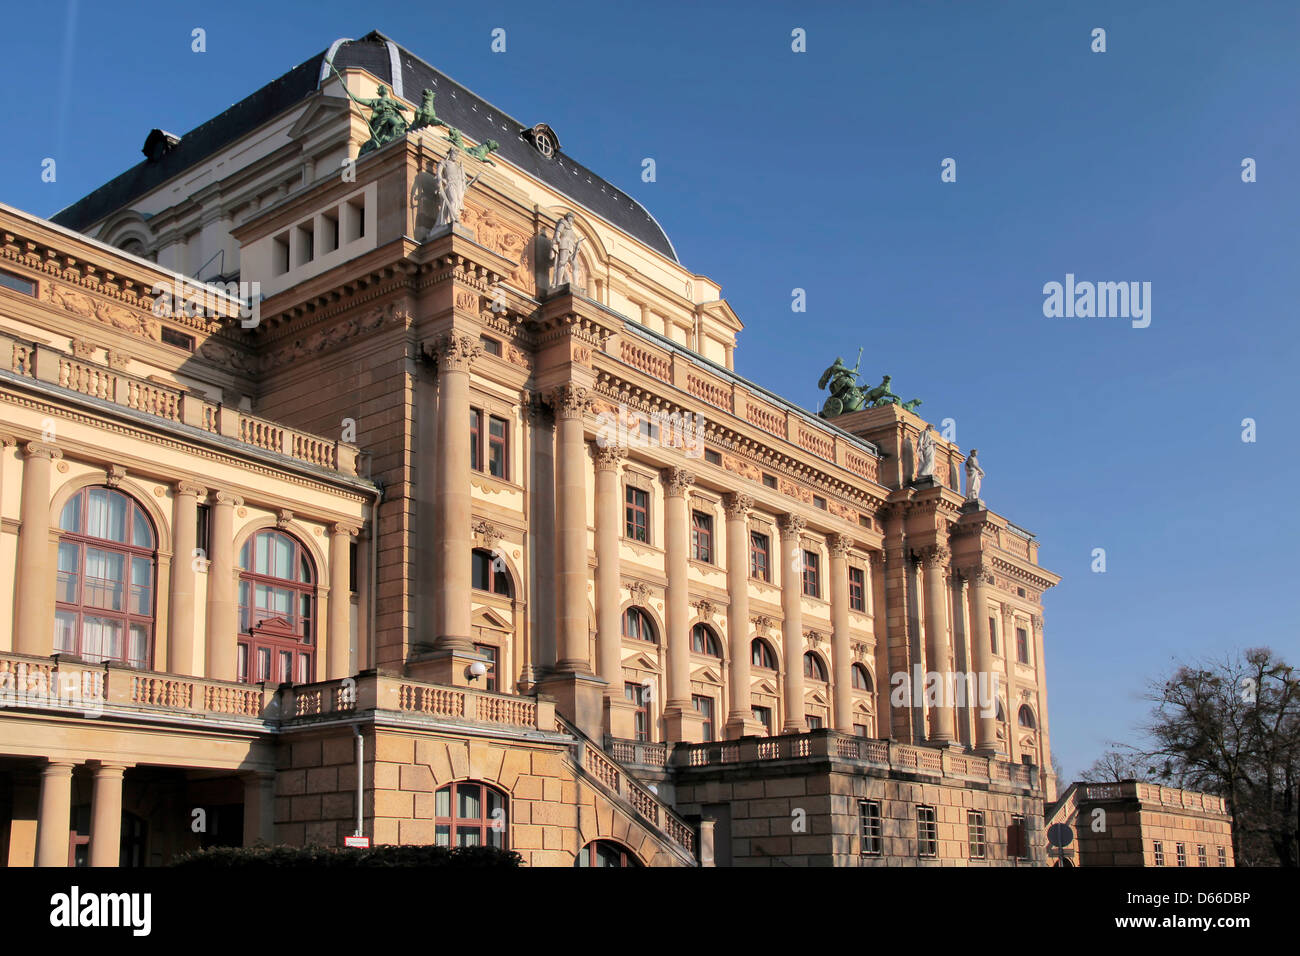 Hessian State Theatre in Wiesbaden, Hesse, Germany - Stock Image